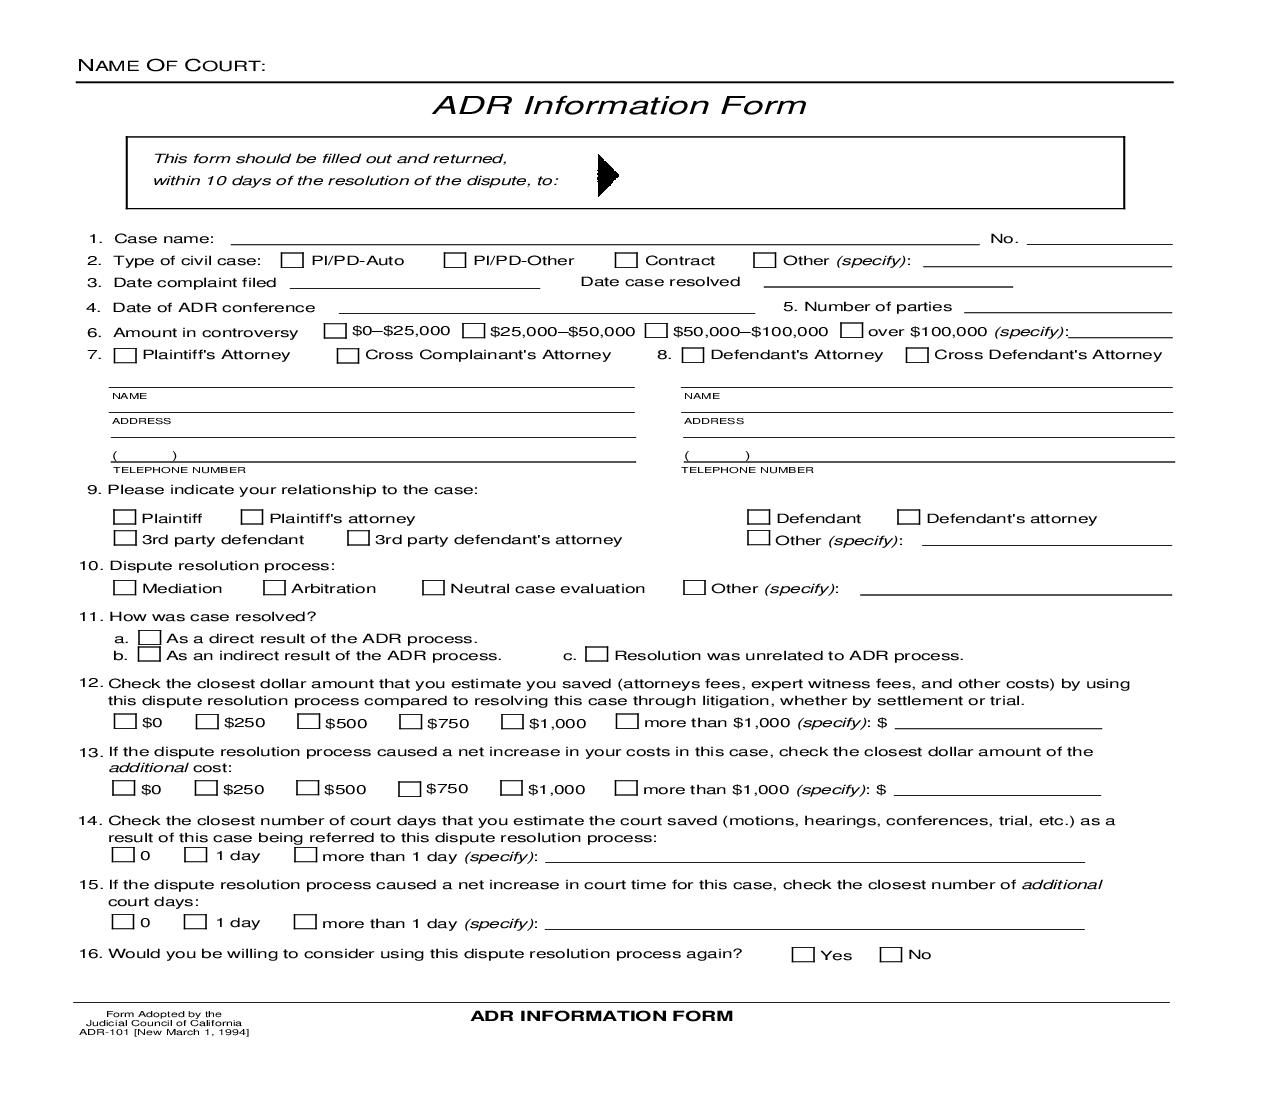 This Is A California Form That Can Be Used For Alternative Dispute